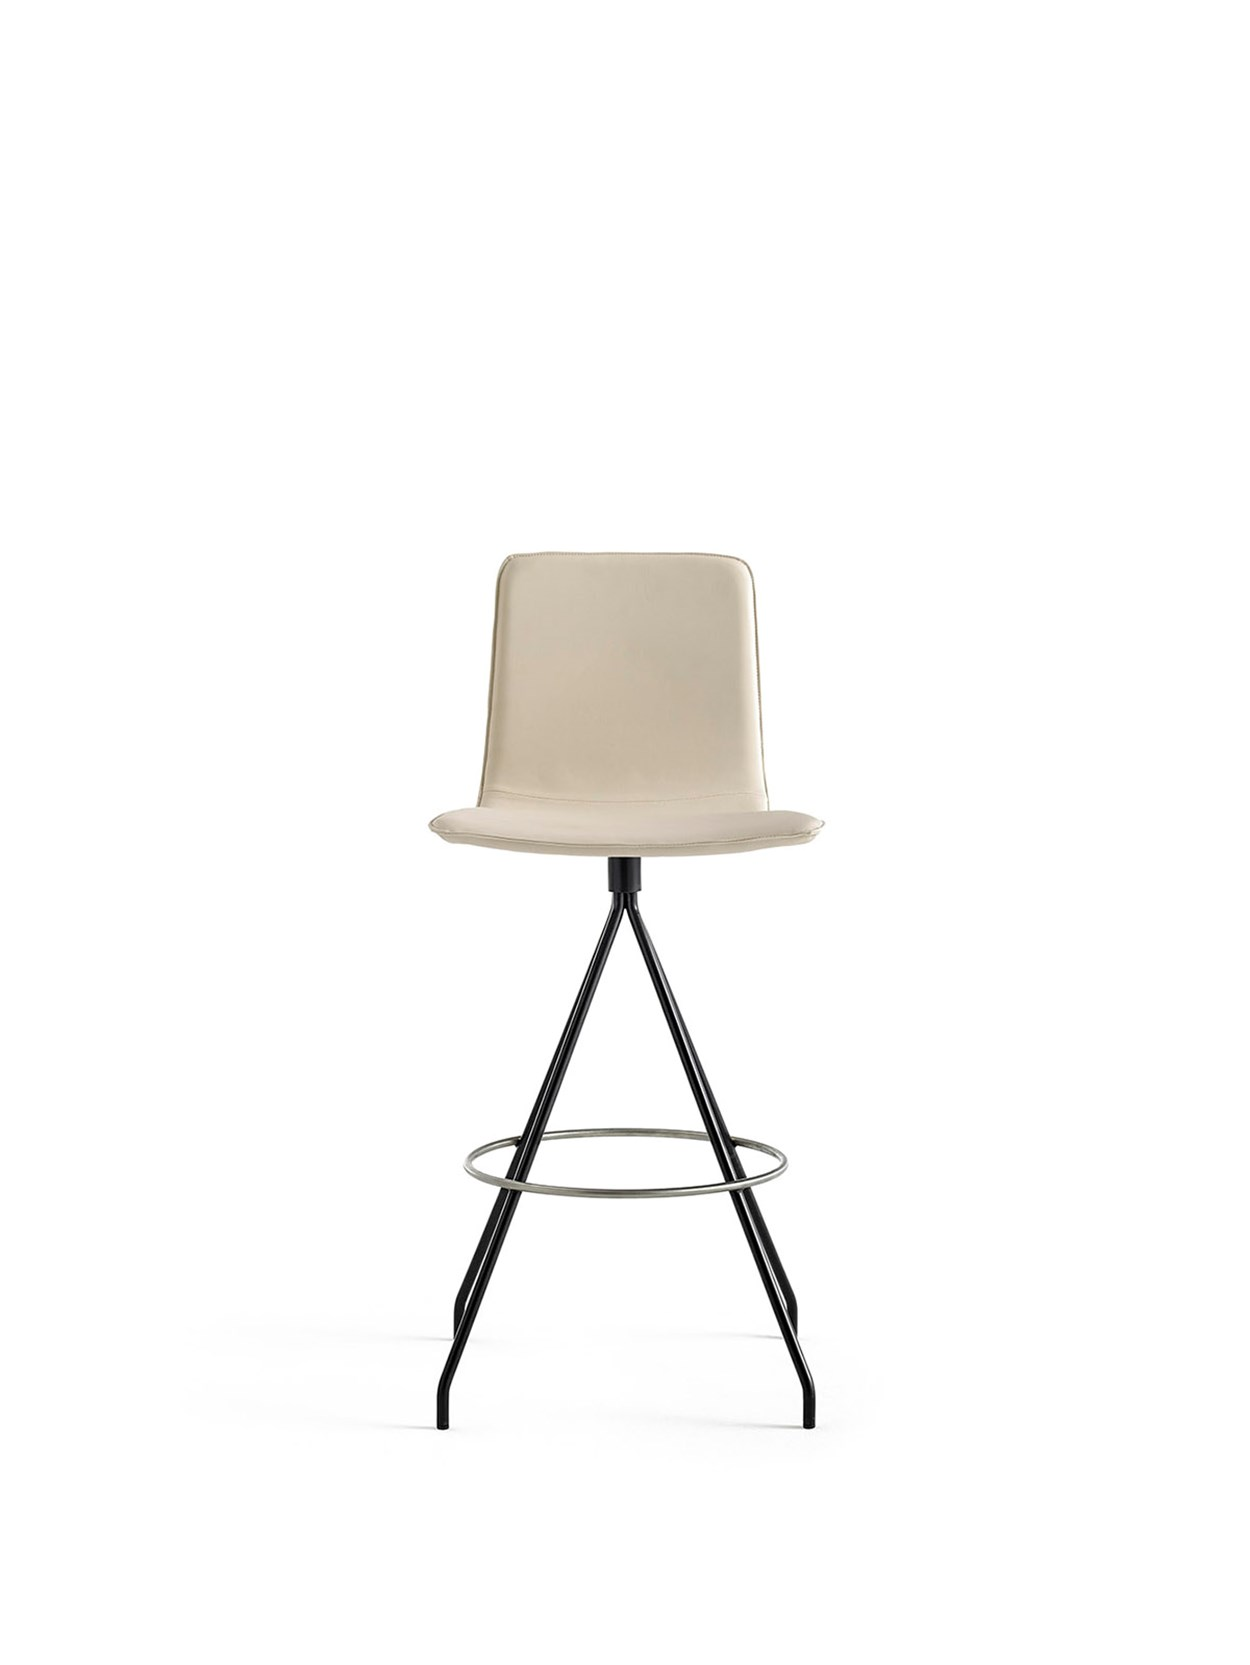 VICCARBE_KLIP smooth uphosltery bar stool_Victor Carrasco (6).jpg